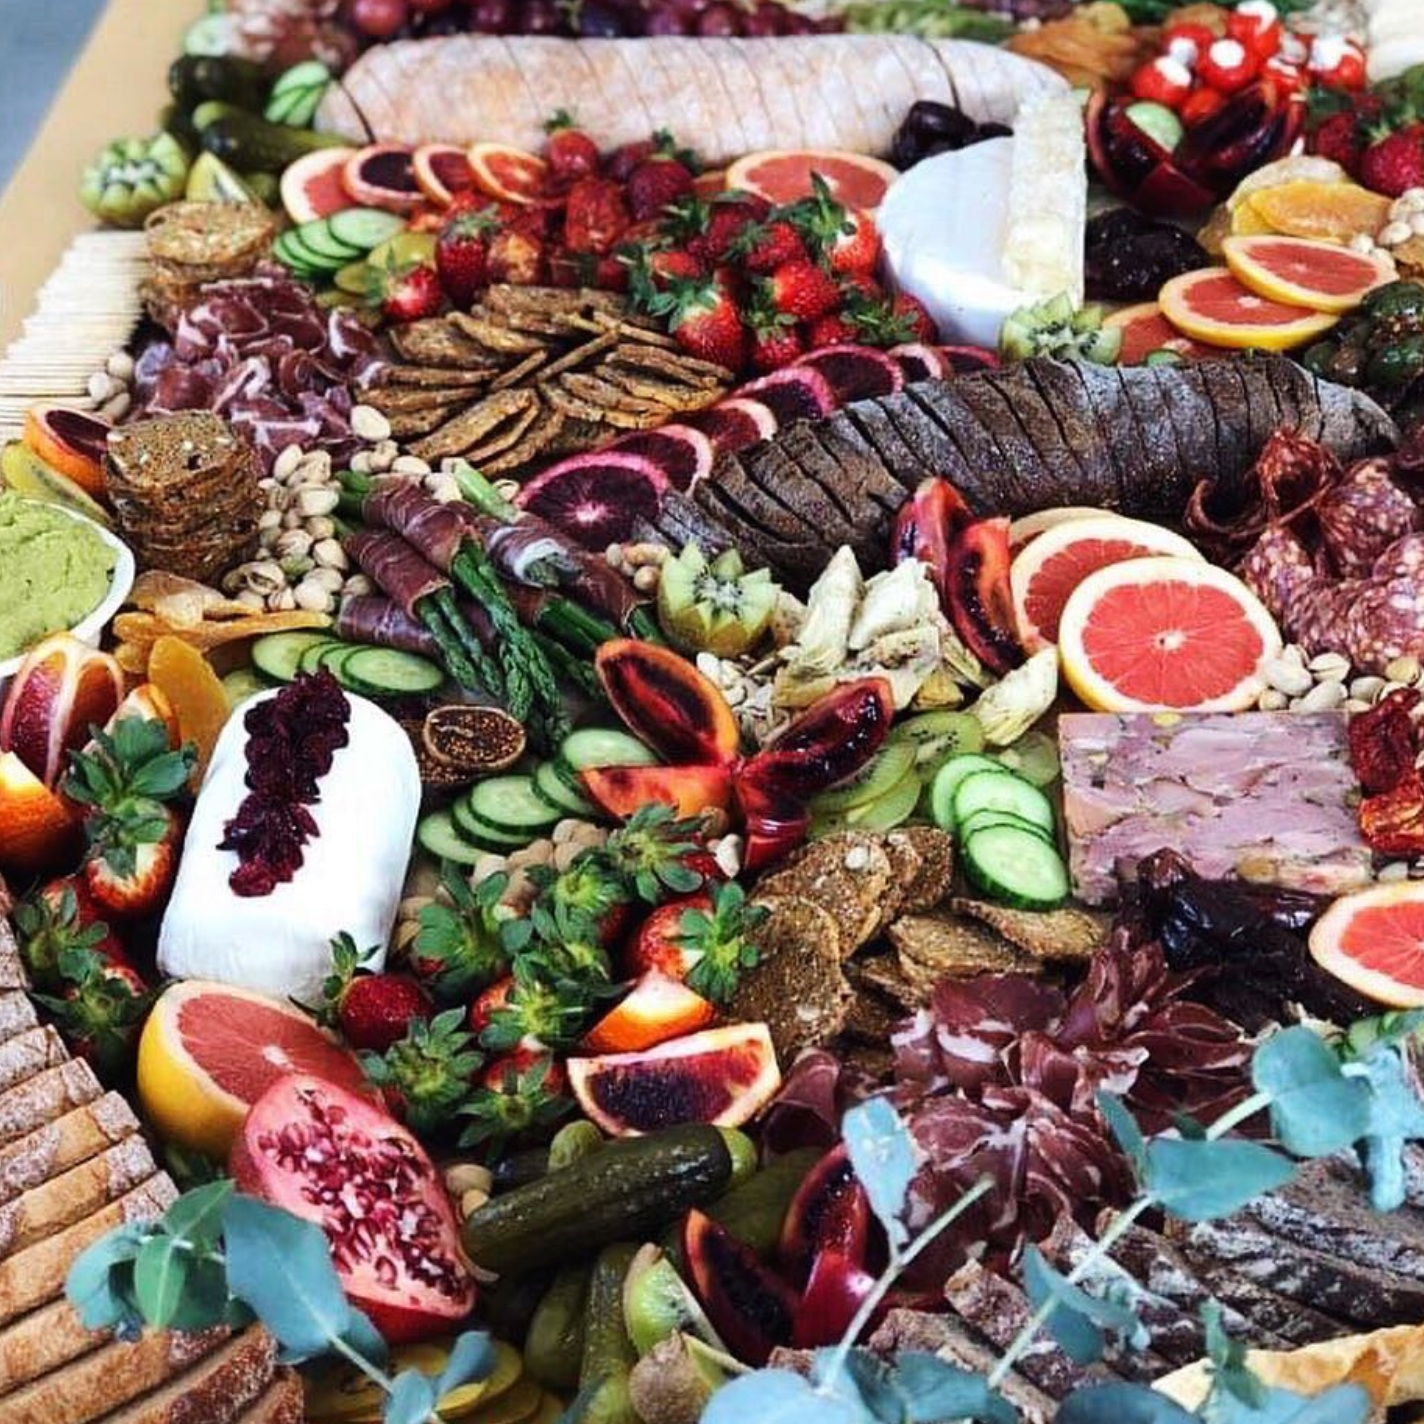 Platter goals from Lavish Grazing Co - Unique Platters & Lavish Grazing tables for all occasions. Bringing your next unforgettable food experience to Queenstown & Beyond.